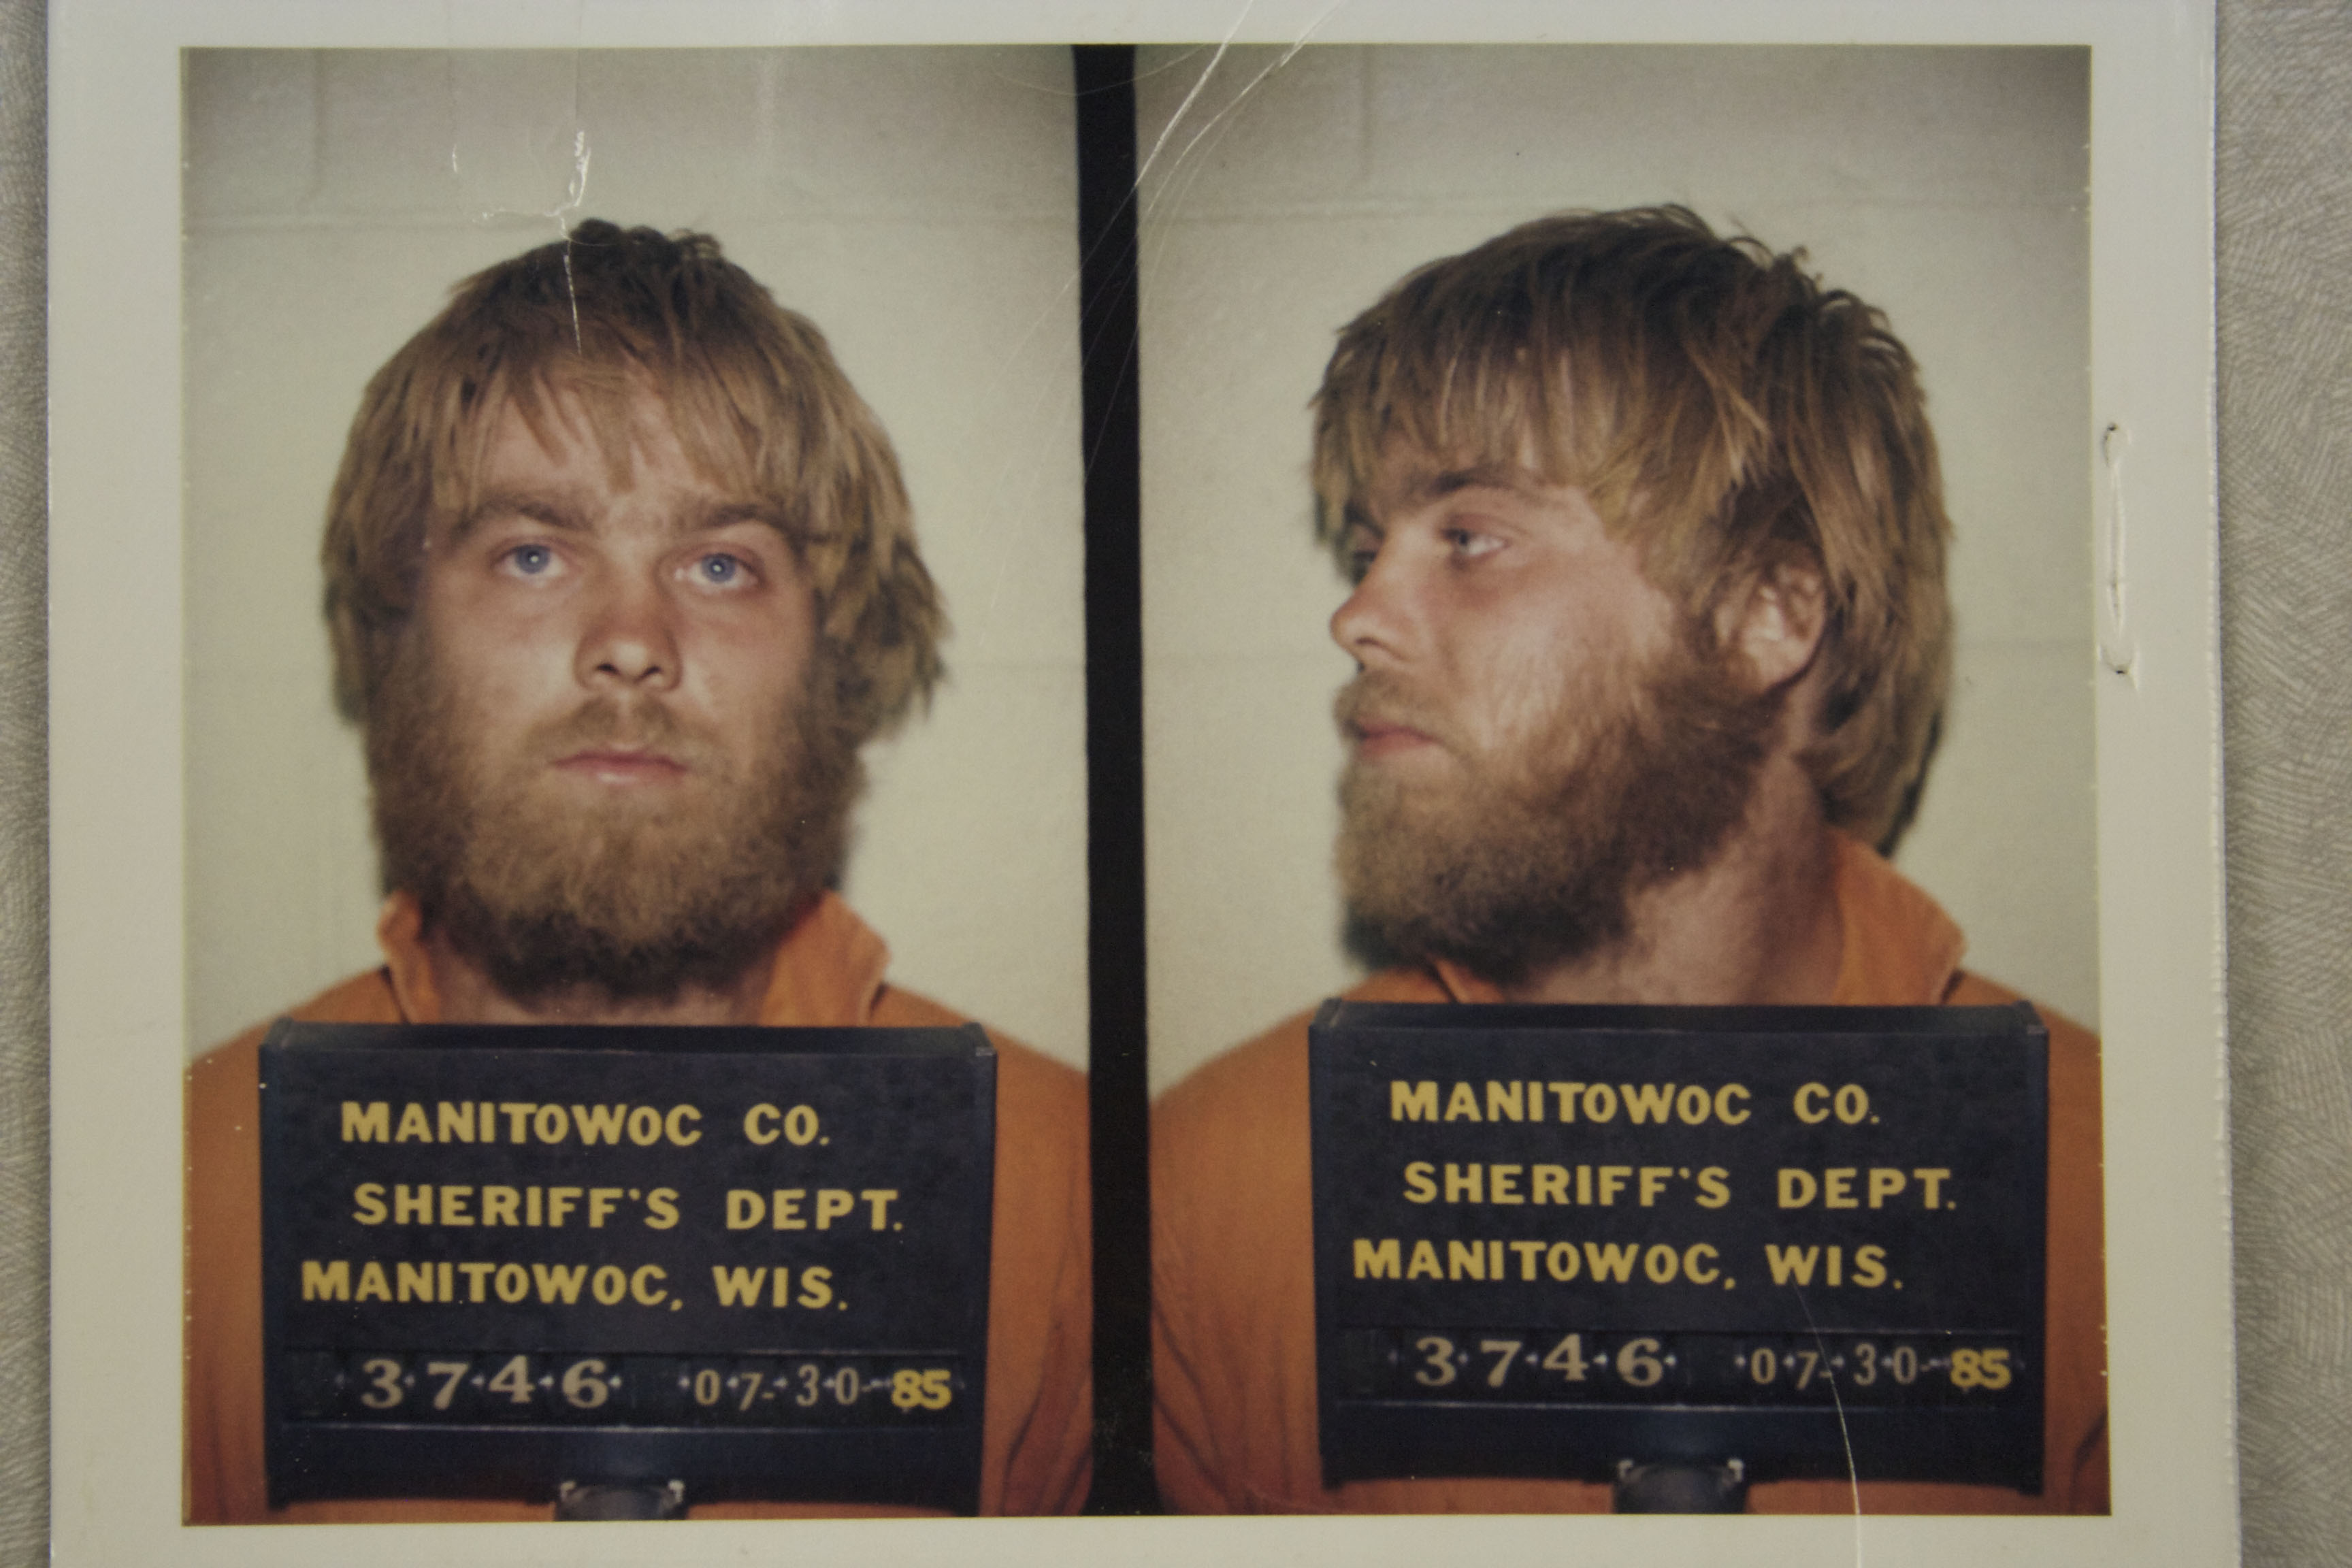 'Making a Murderer' Footage 'Manipulated,' Says Manitowoc Sheriff